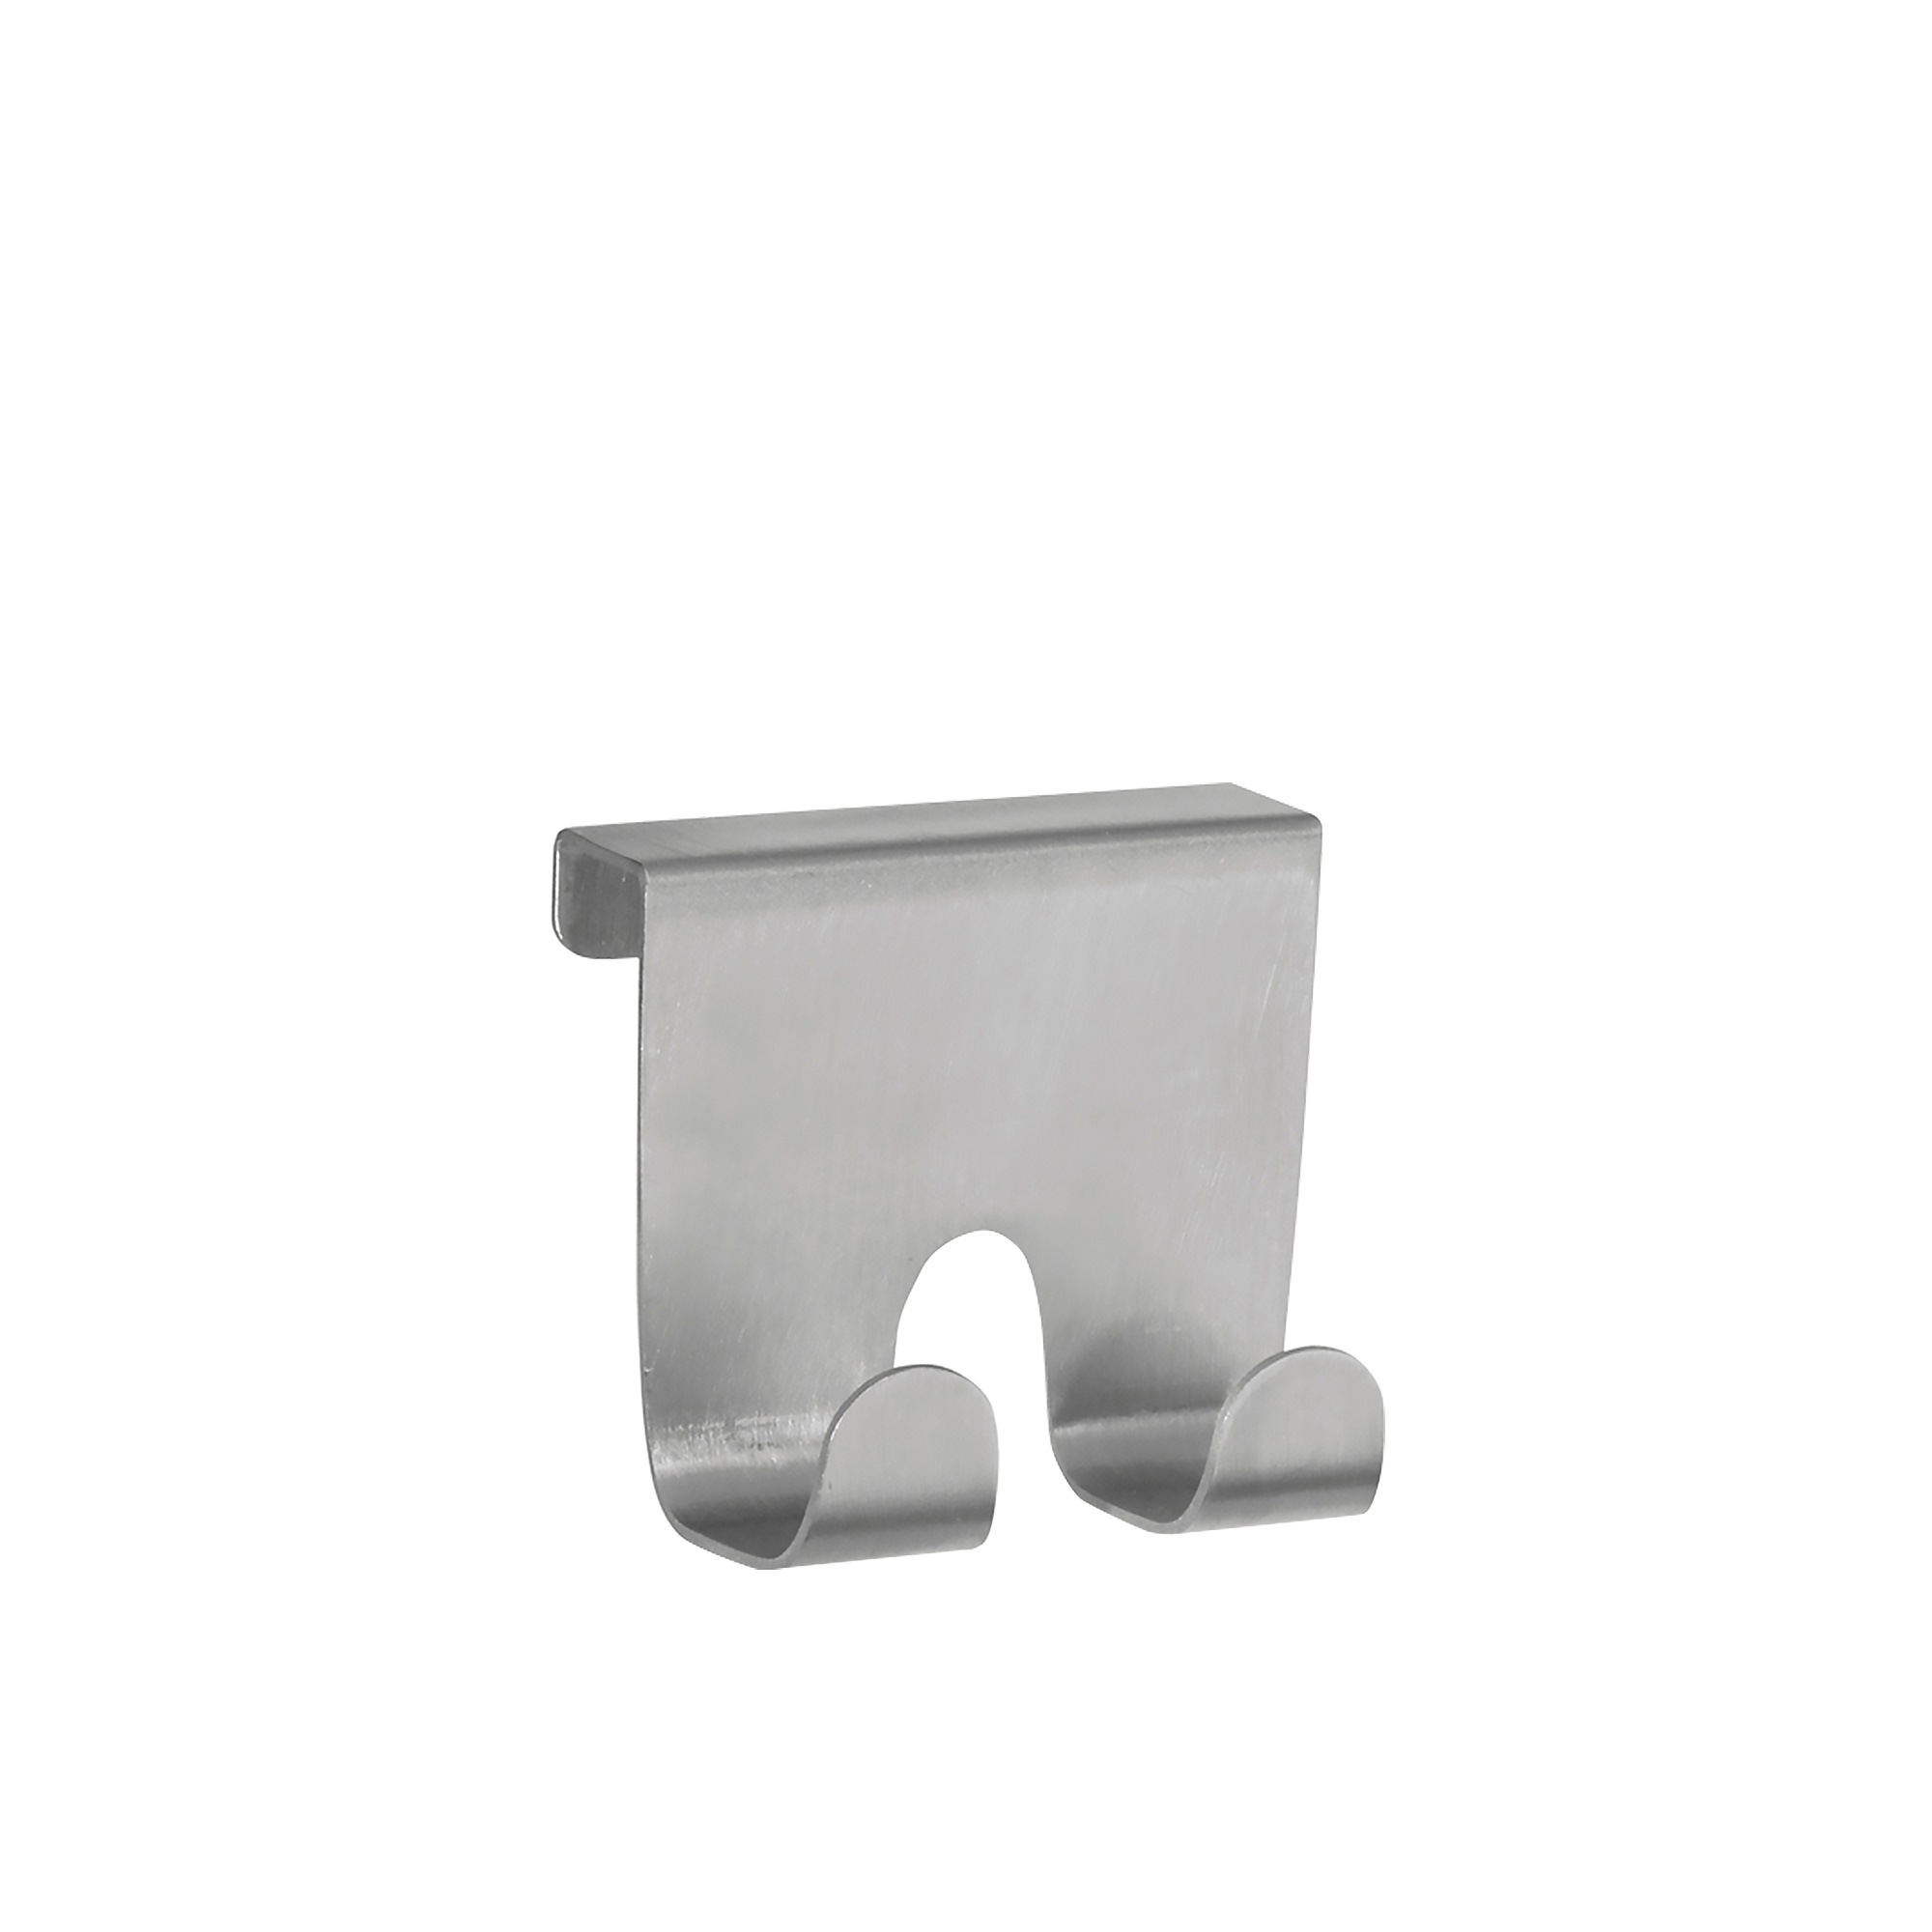 Interdesign Forma Over The Cabinet Double Hook 7x5x6cm Steel